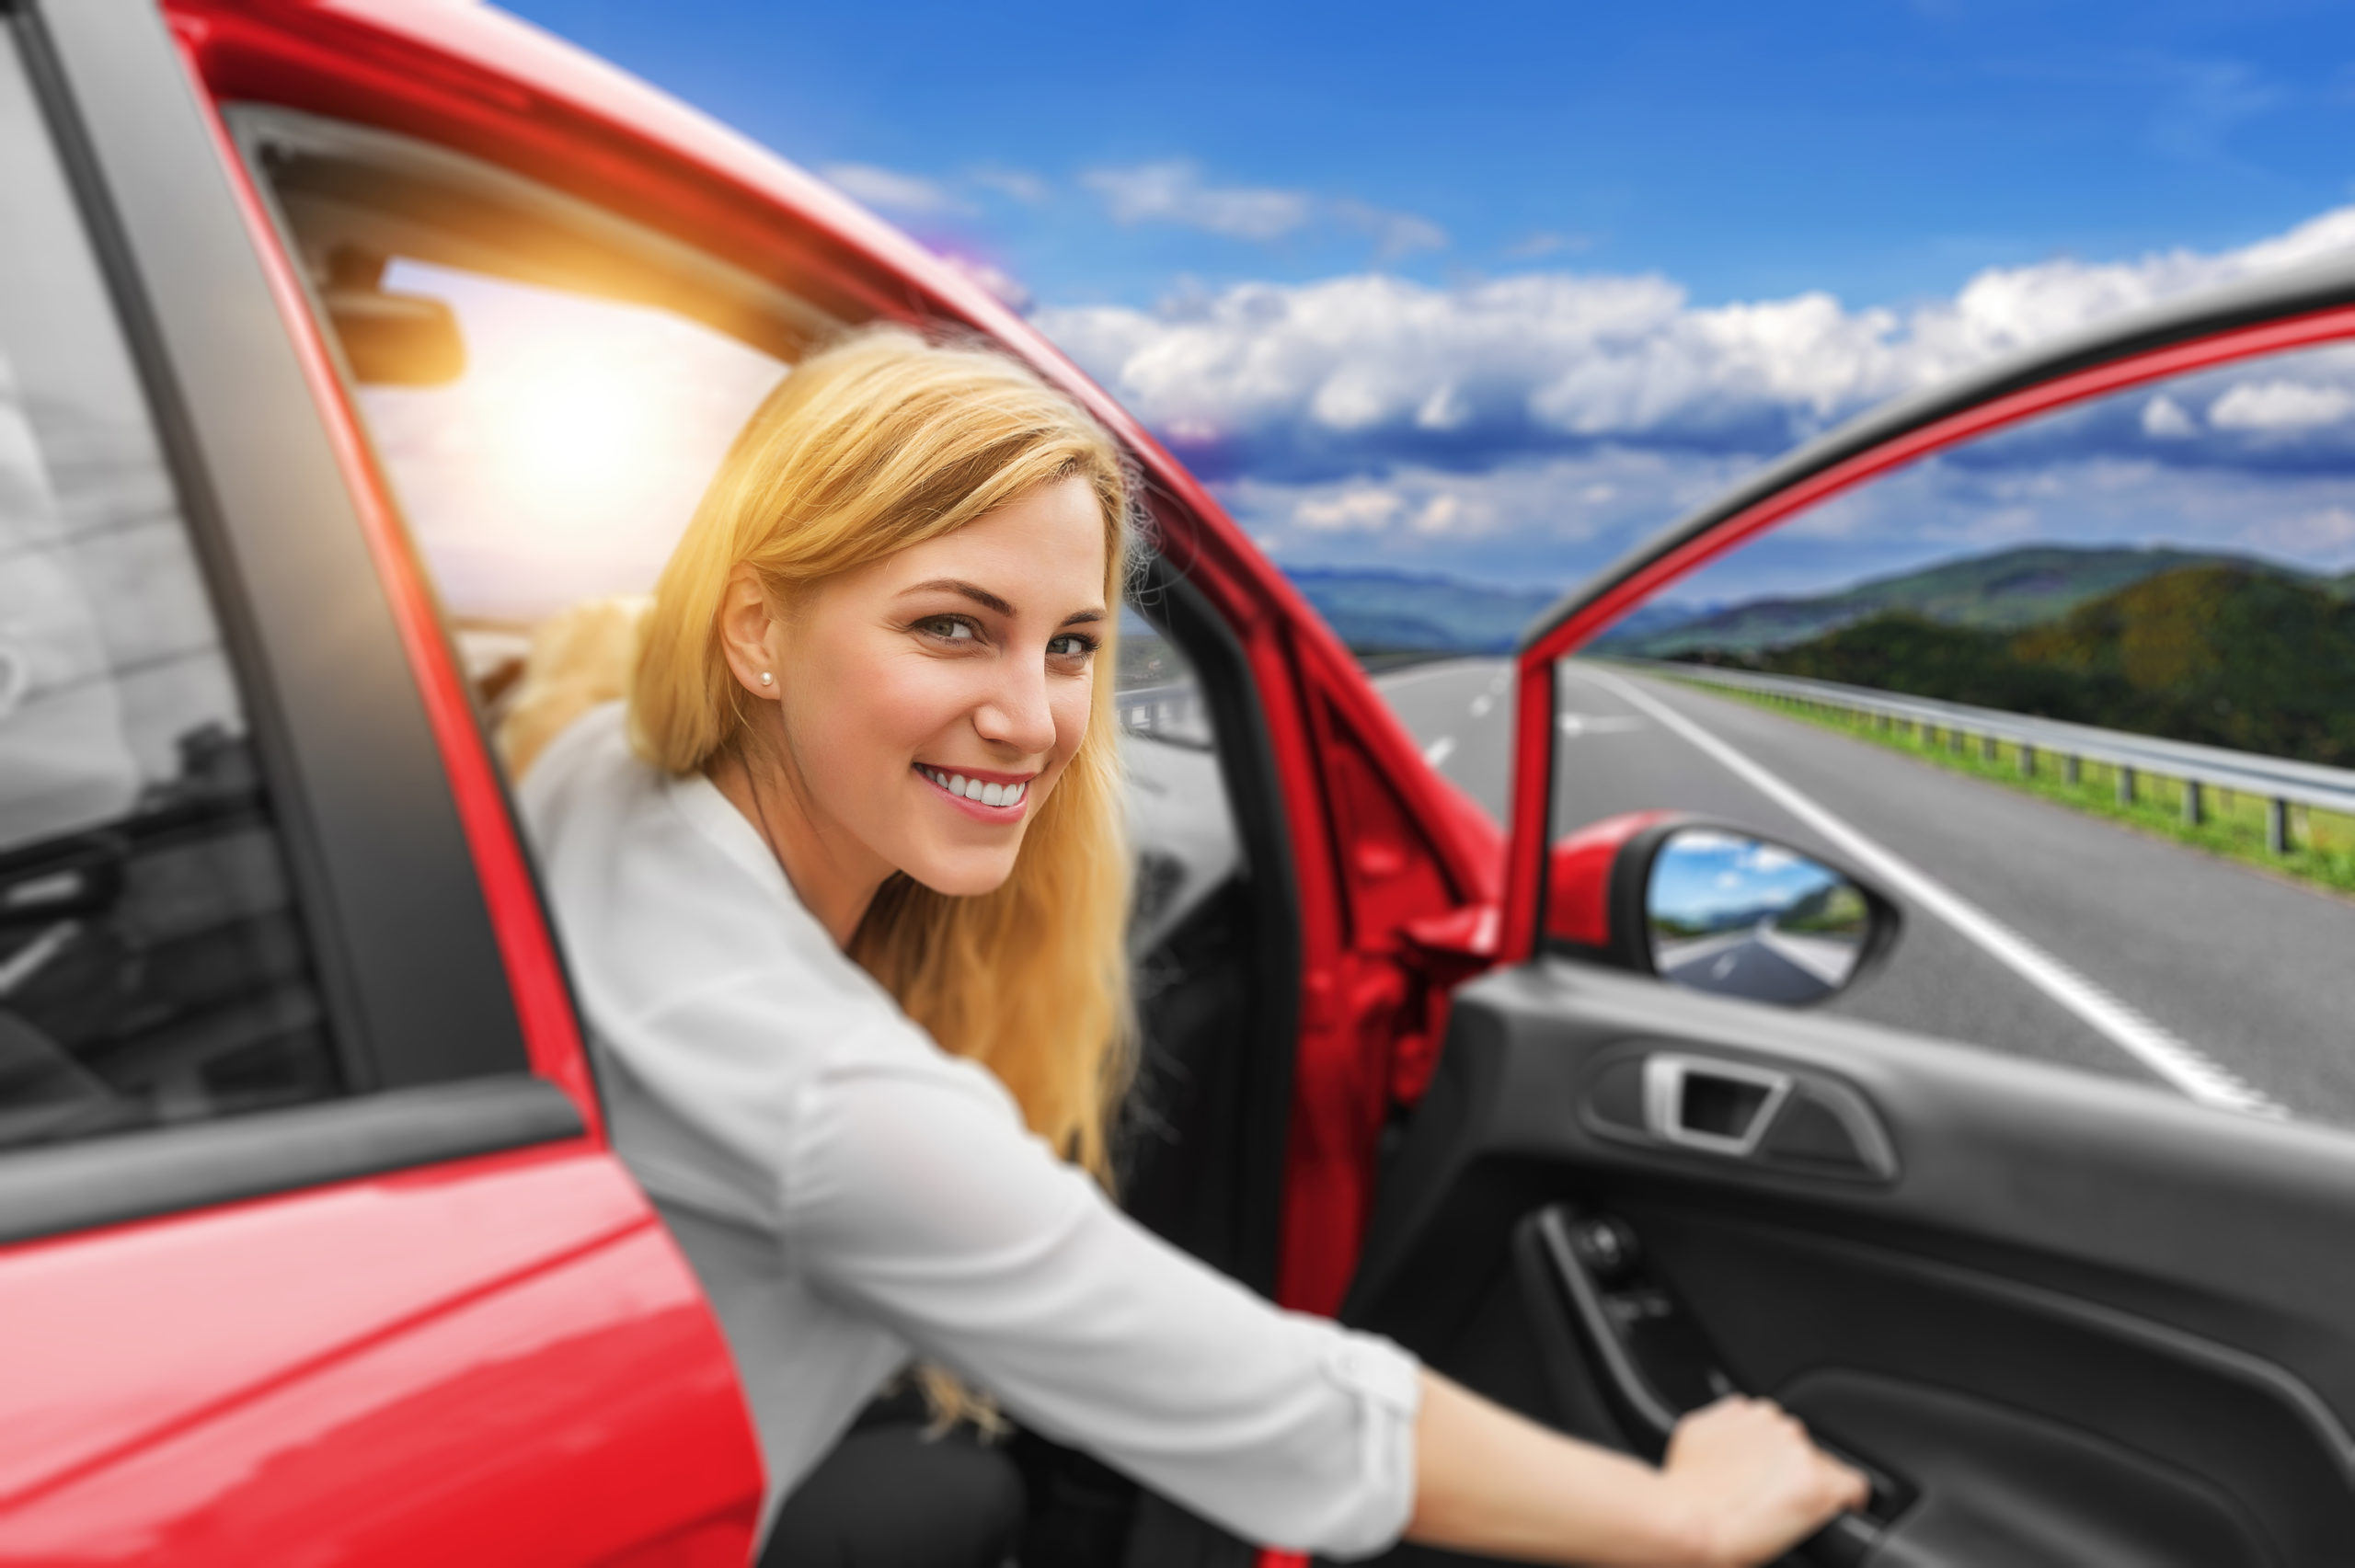 Beautiful blonde girl driving a car on the highway. The woman opens the car door. Invitation to travel. Car rental or vacation.